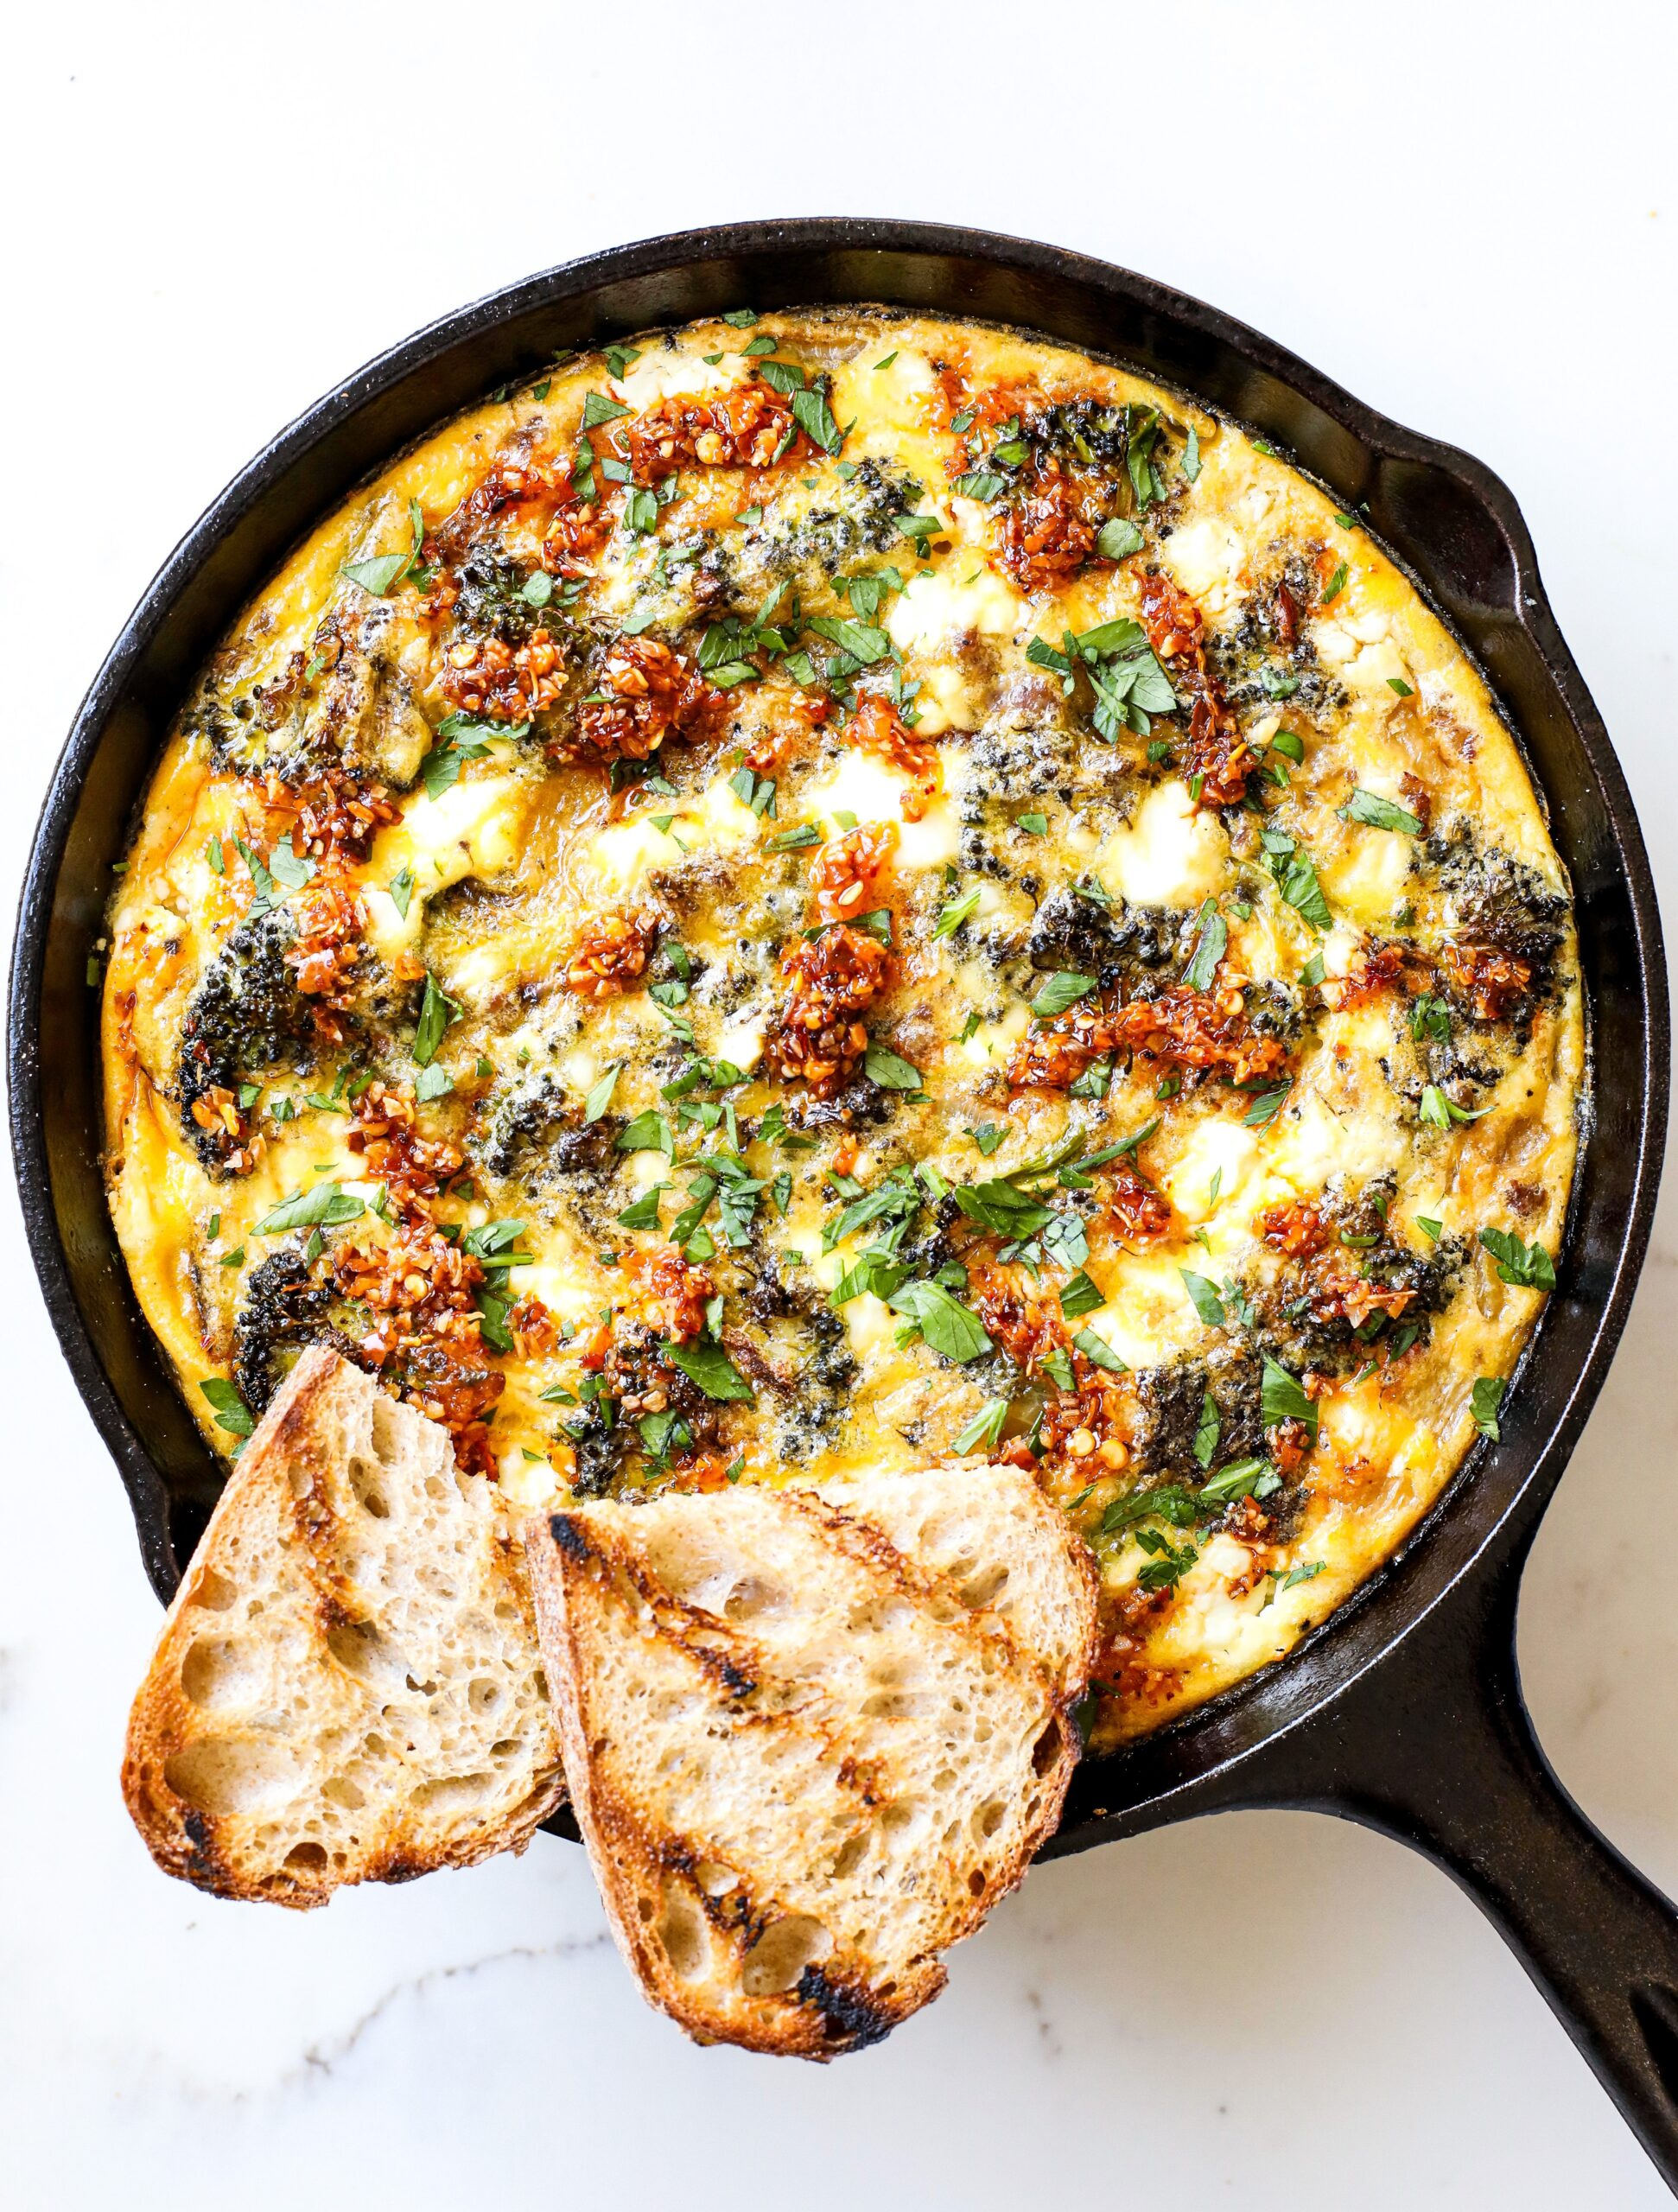 Roasted Broccoli, Sausage, and Goat Cheese Frittata